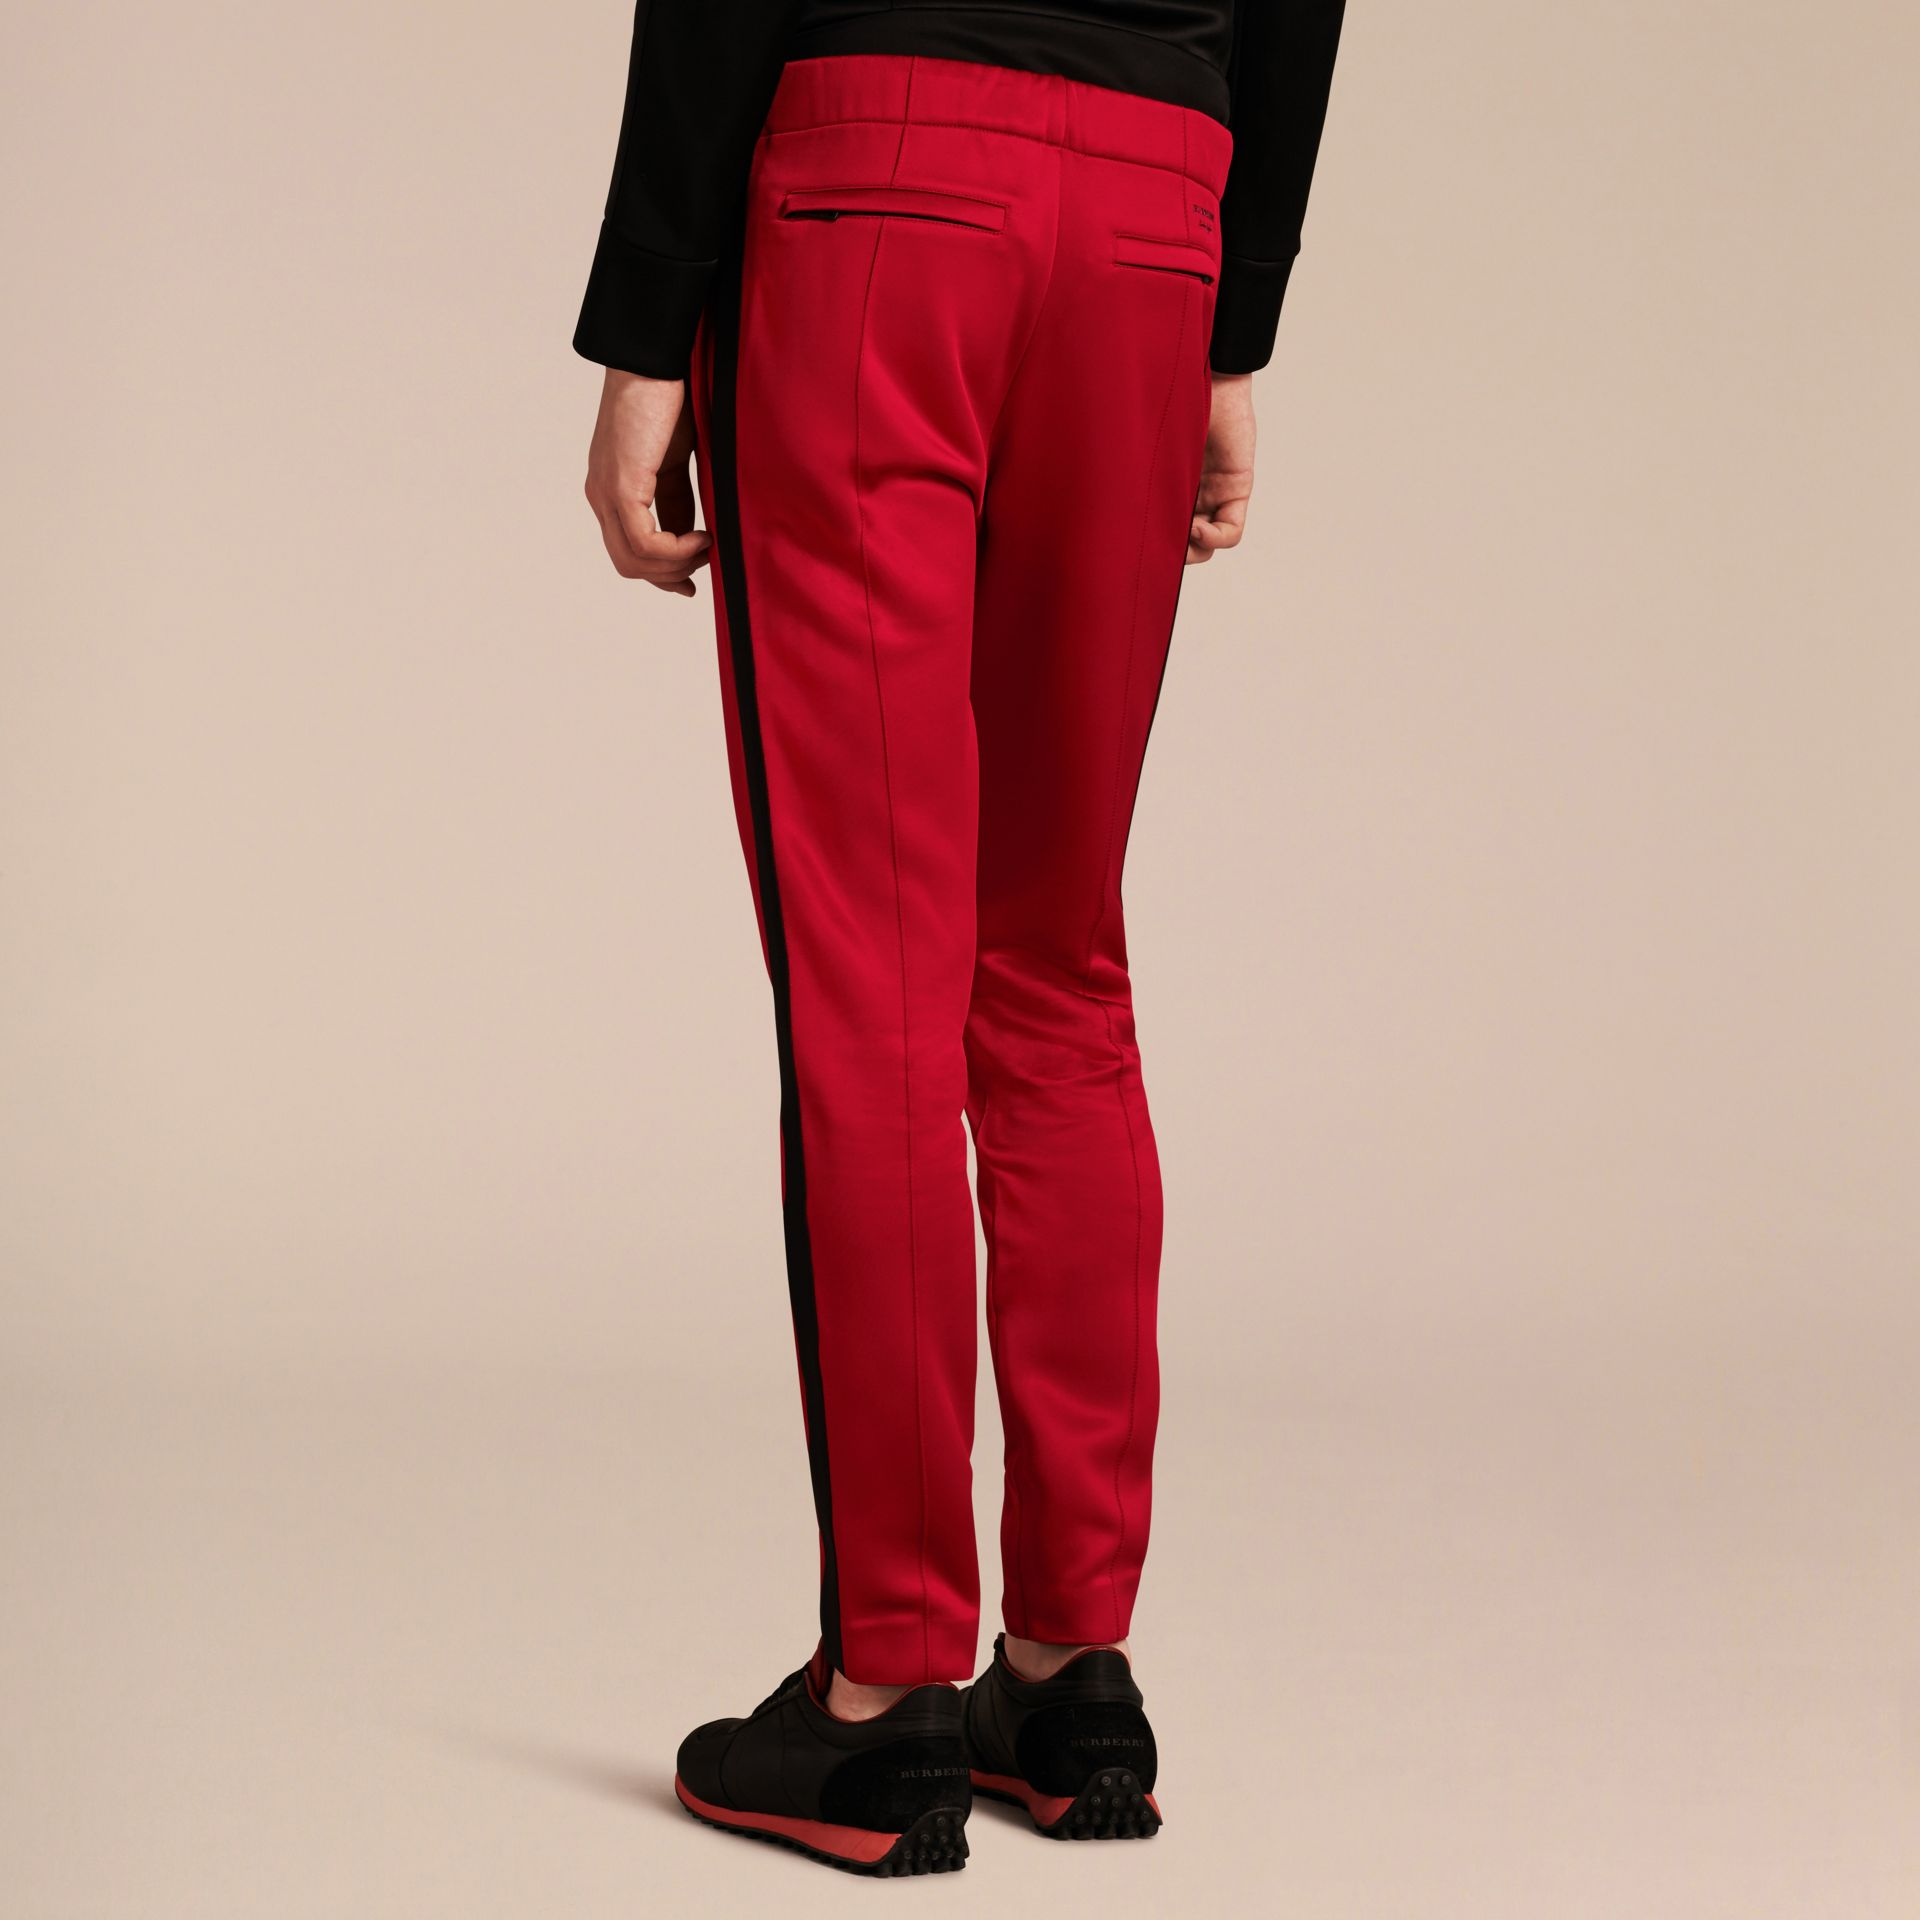 Rouge canneberge Pantalon de survêtement ultra-brillant Rouge Canneberge - photo de la galerie 3